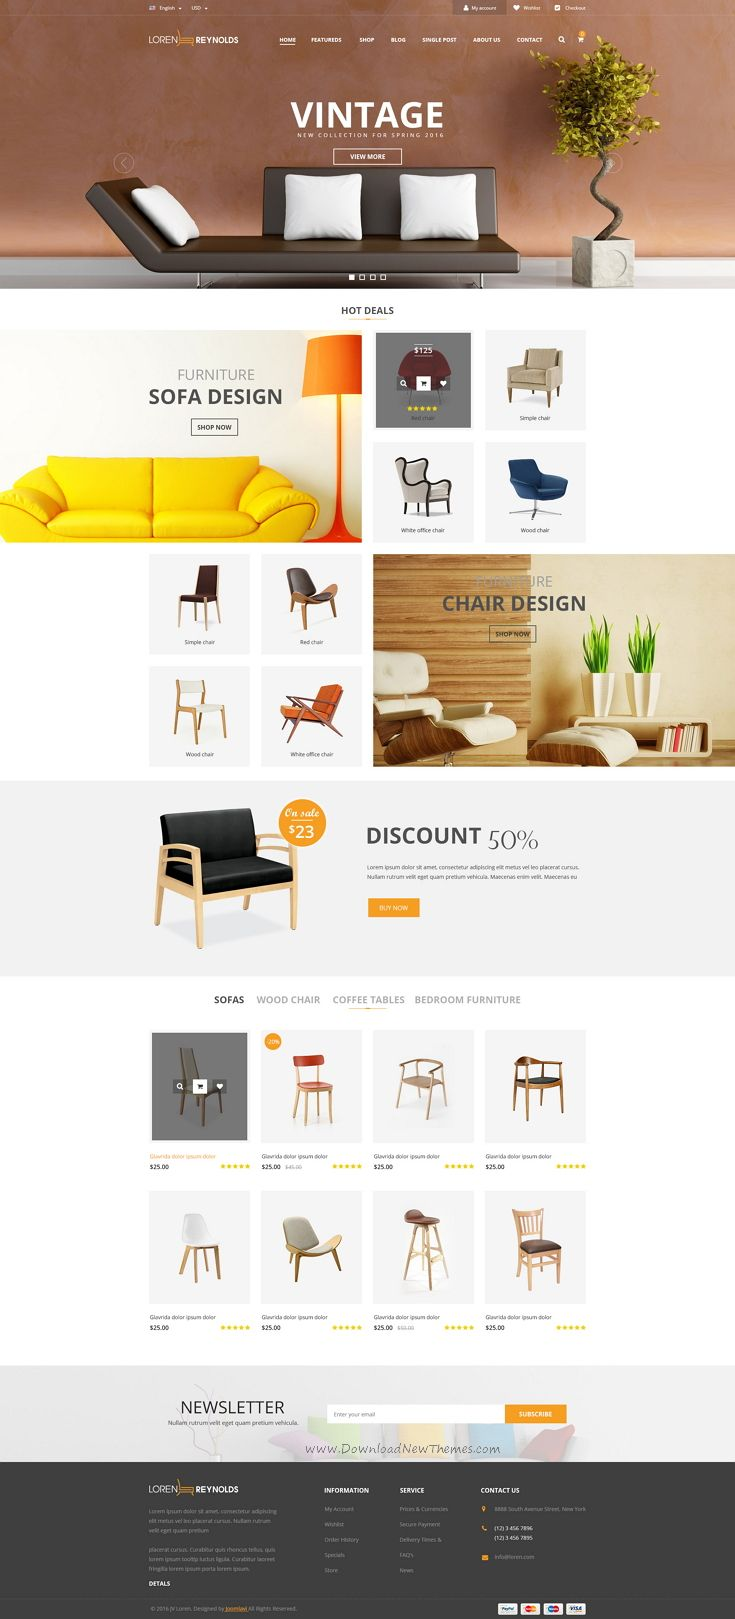 Loren is Multipurpose PSD Template with awesome design ideal for any type of business #website of Creative Corporate, News, Creative Blog, Organization, Community. #furniture #shop